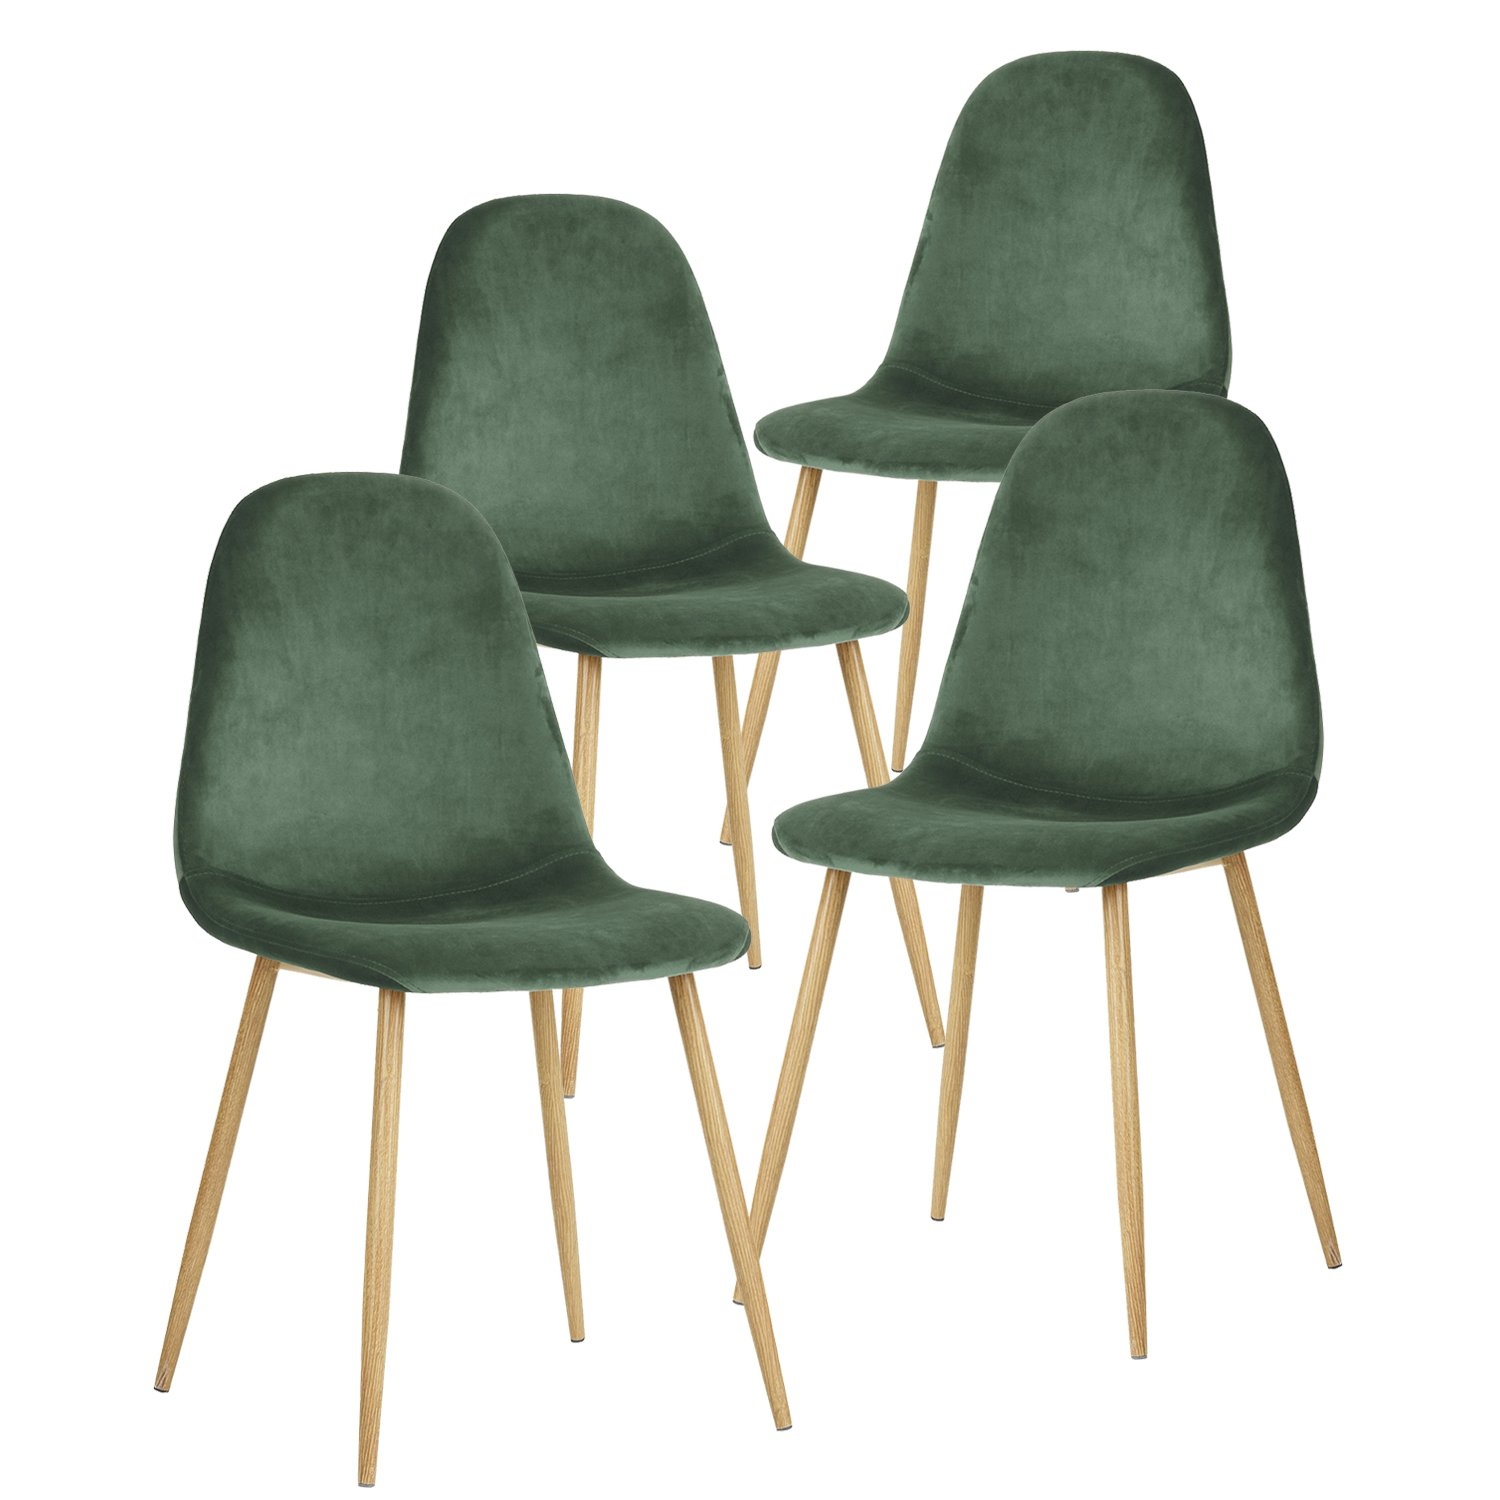 ''20%Off ''GreenForest Dining Chairs for kitchen,Elegant Velvet Back and Cushion, Mid Century Modern Side Chairs Set of 4 for Christmas,Cactus